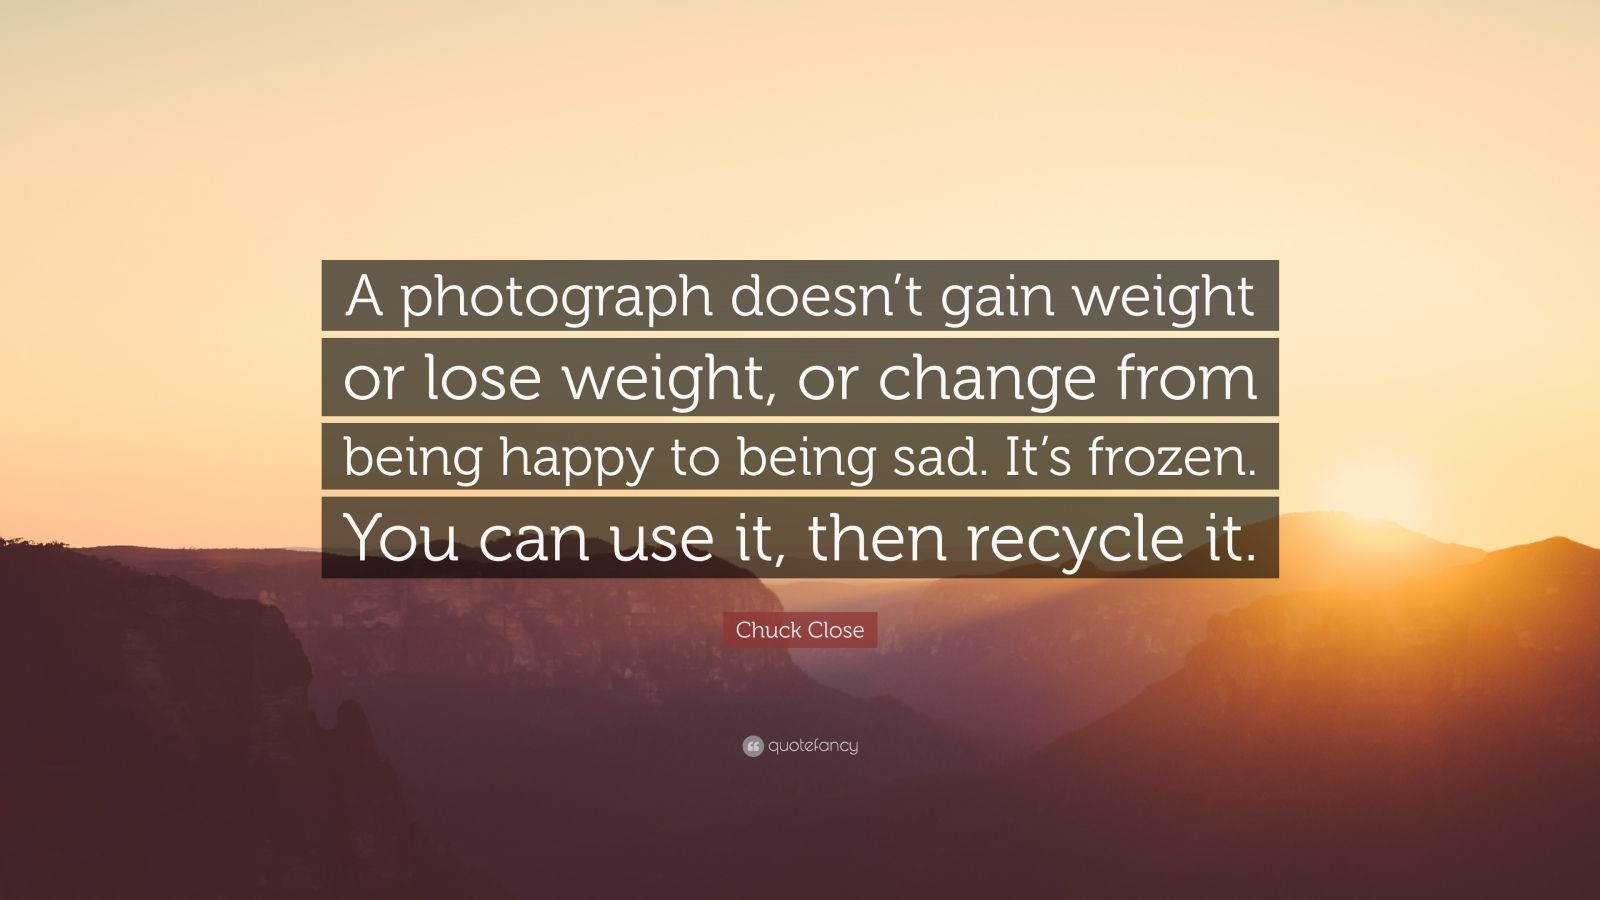 """Chuck Close Quote: """"A photograph doesn't gain weight or lose weight, or change from being happy to being sad. It's frozen. You can use it, then recycle it."""""""